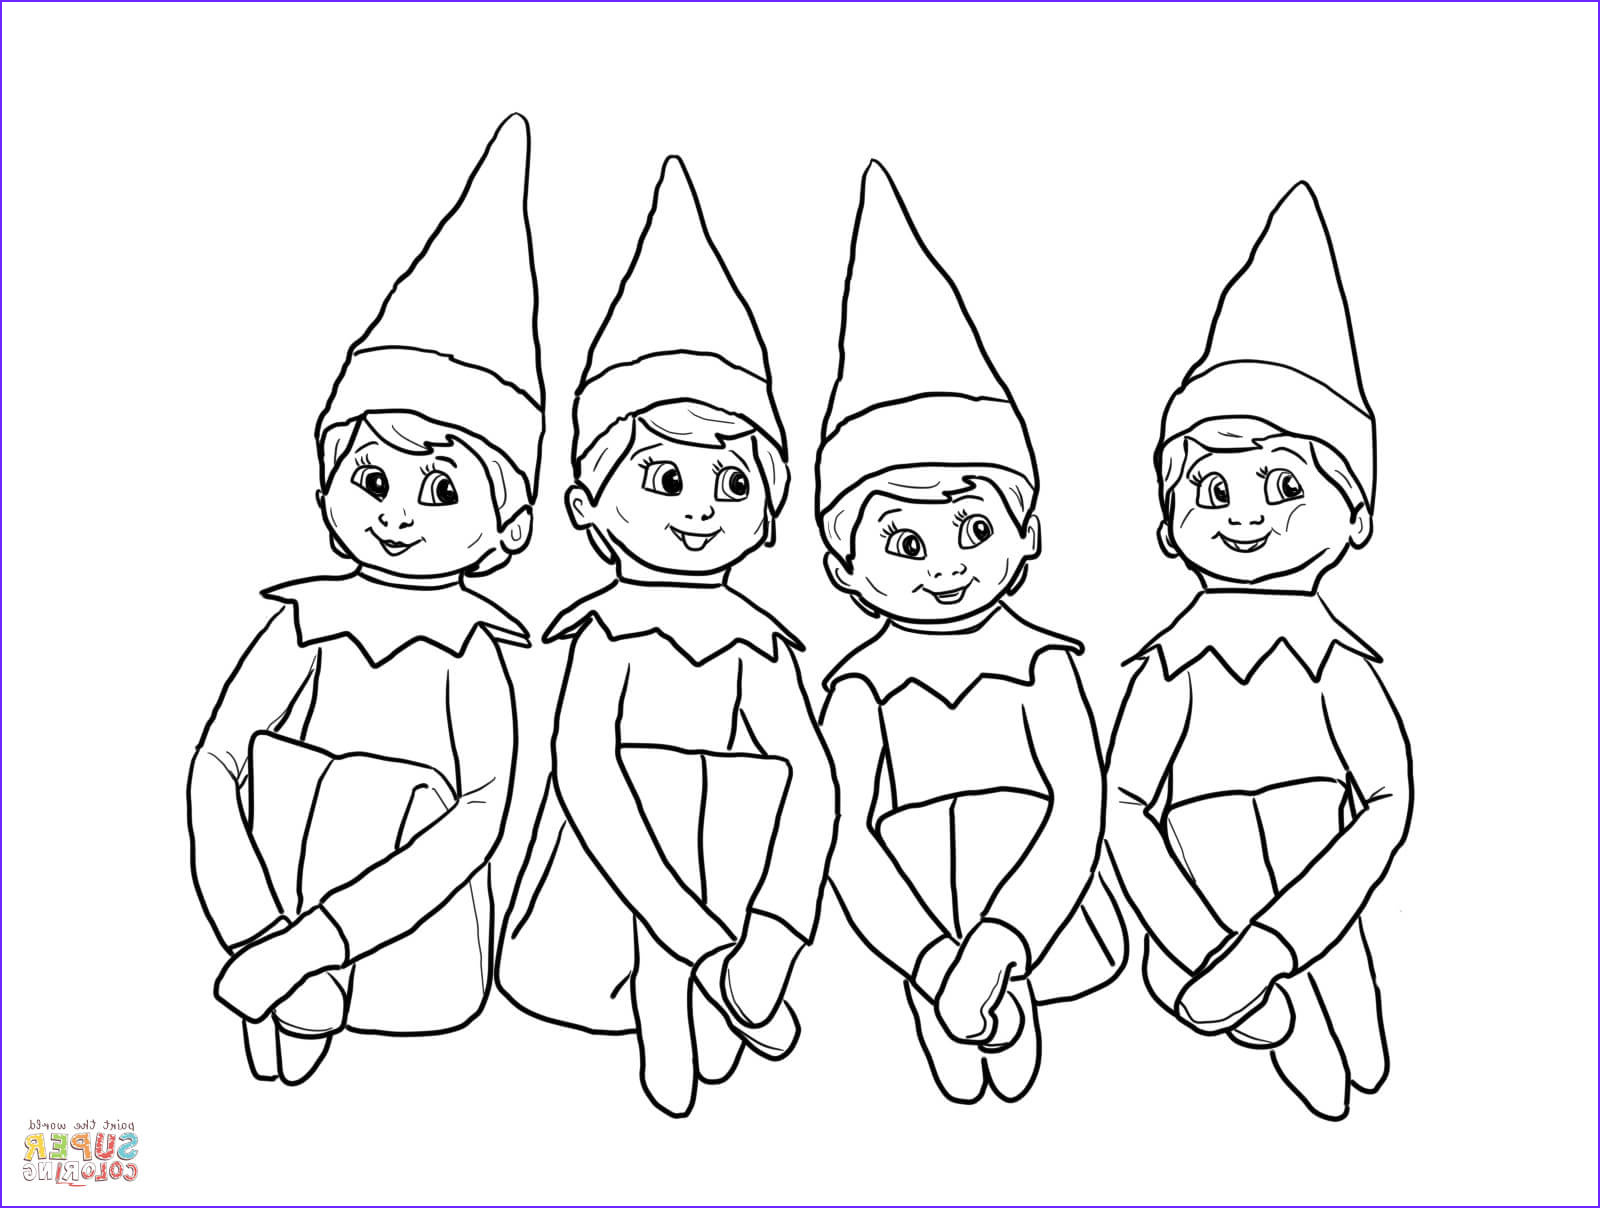 Elf On the Shelf Coloring Sheets Awesome Photos Elves On the Shelf Coloring Page